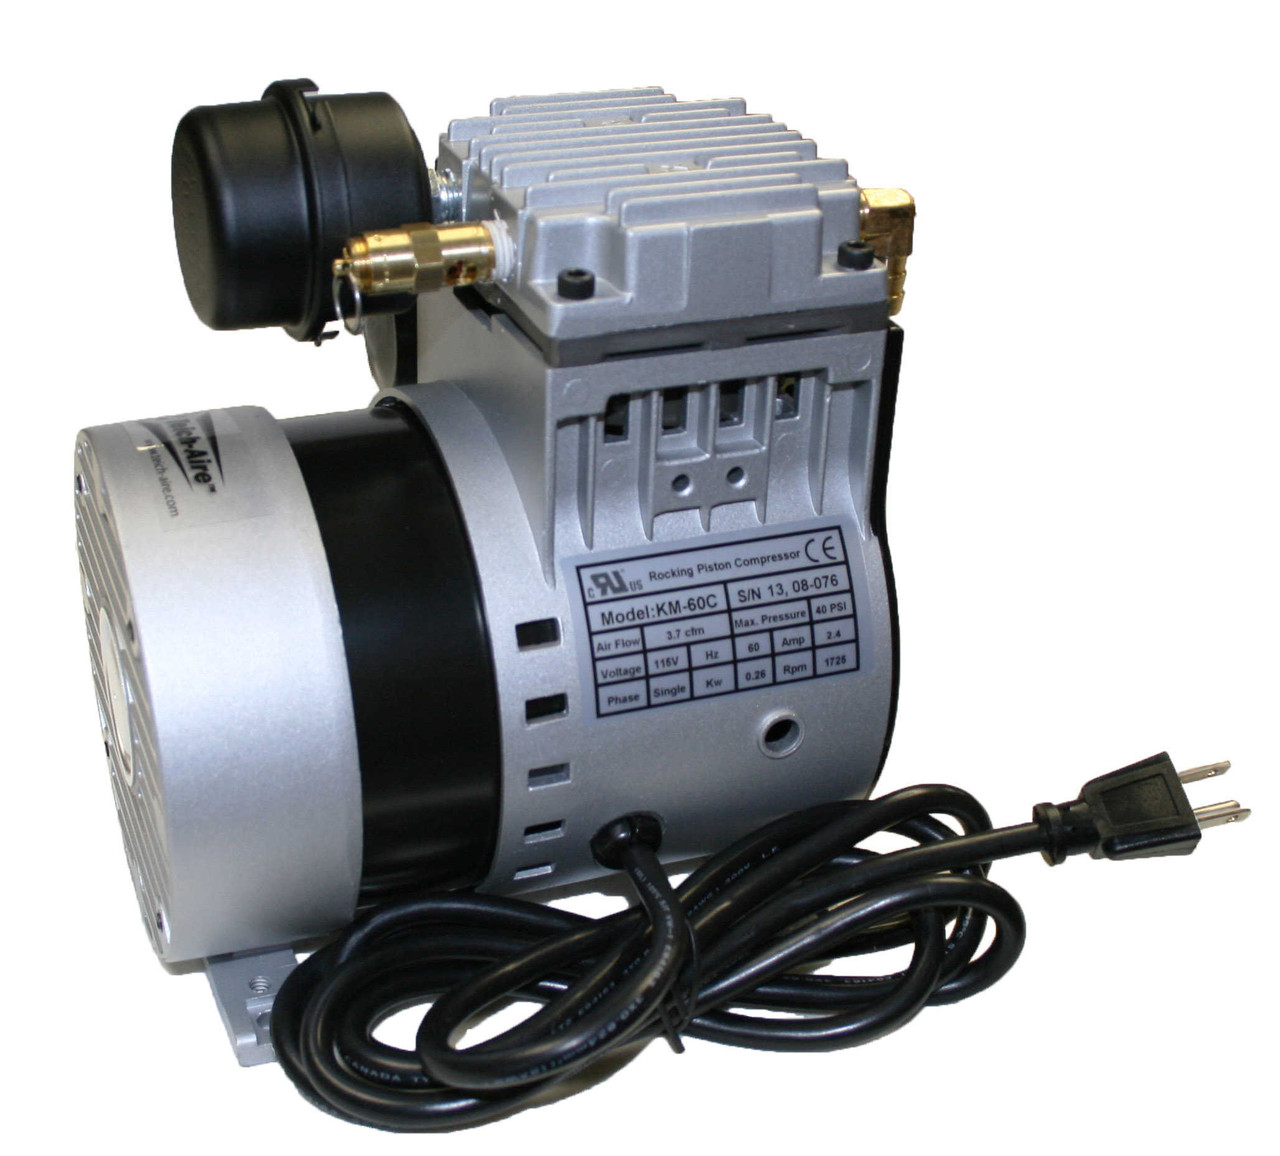 KM-60 1/4 HP Air Compressor